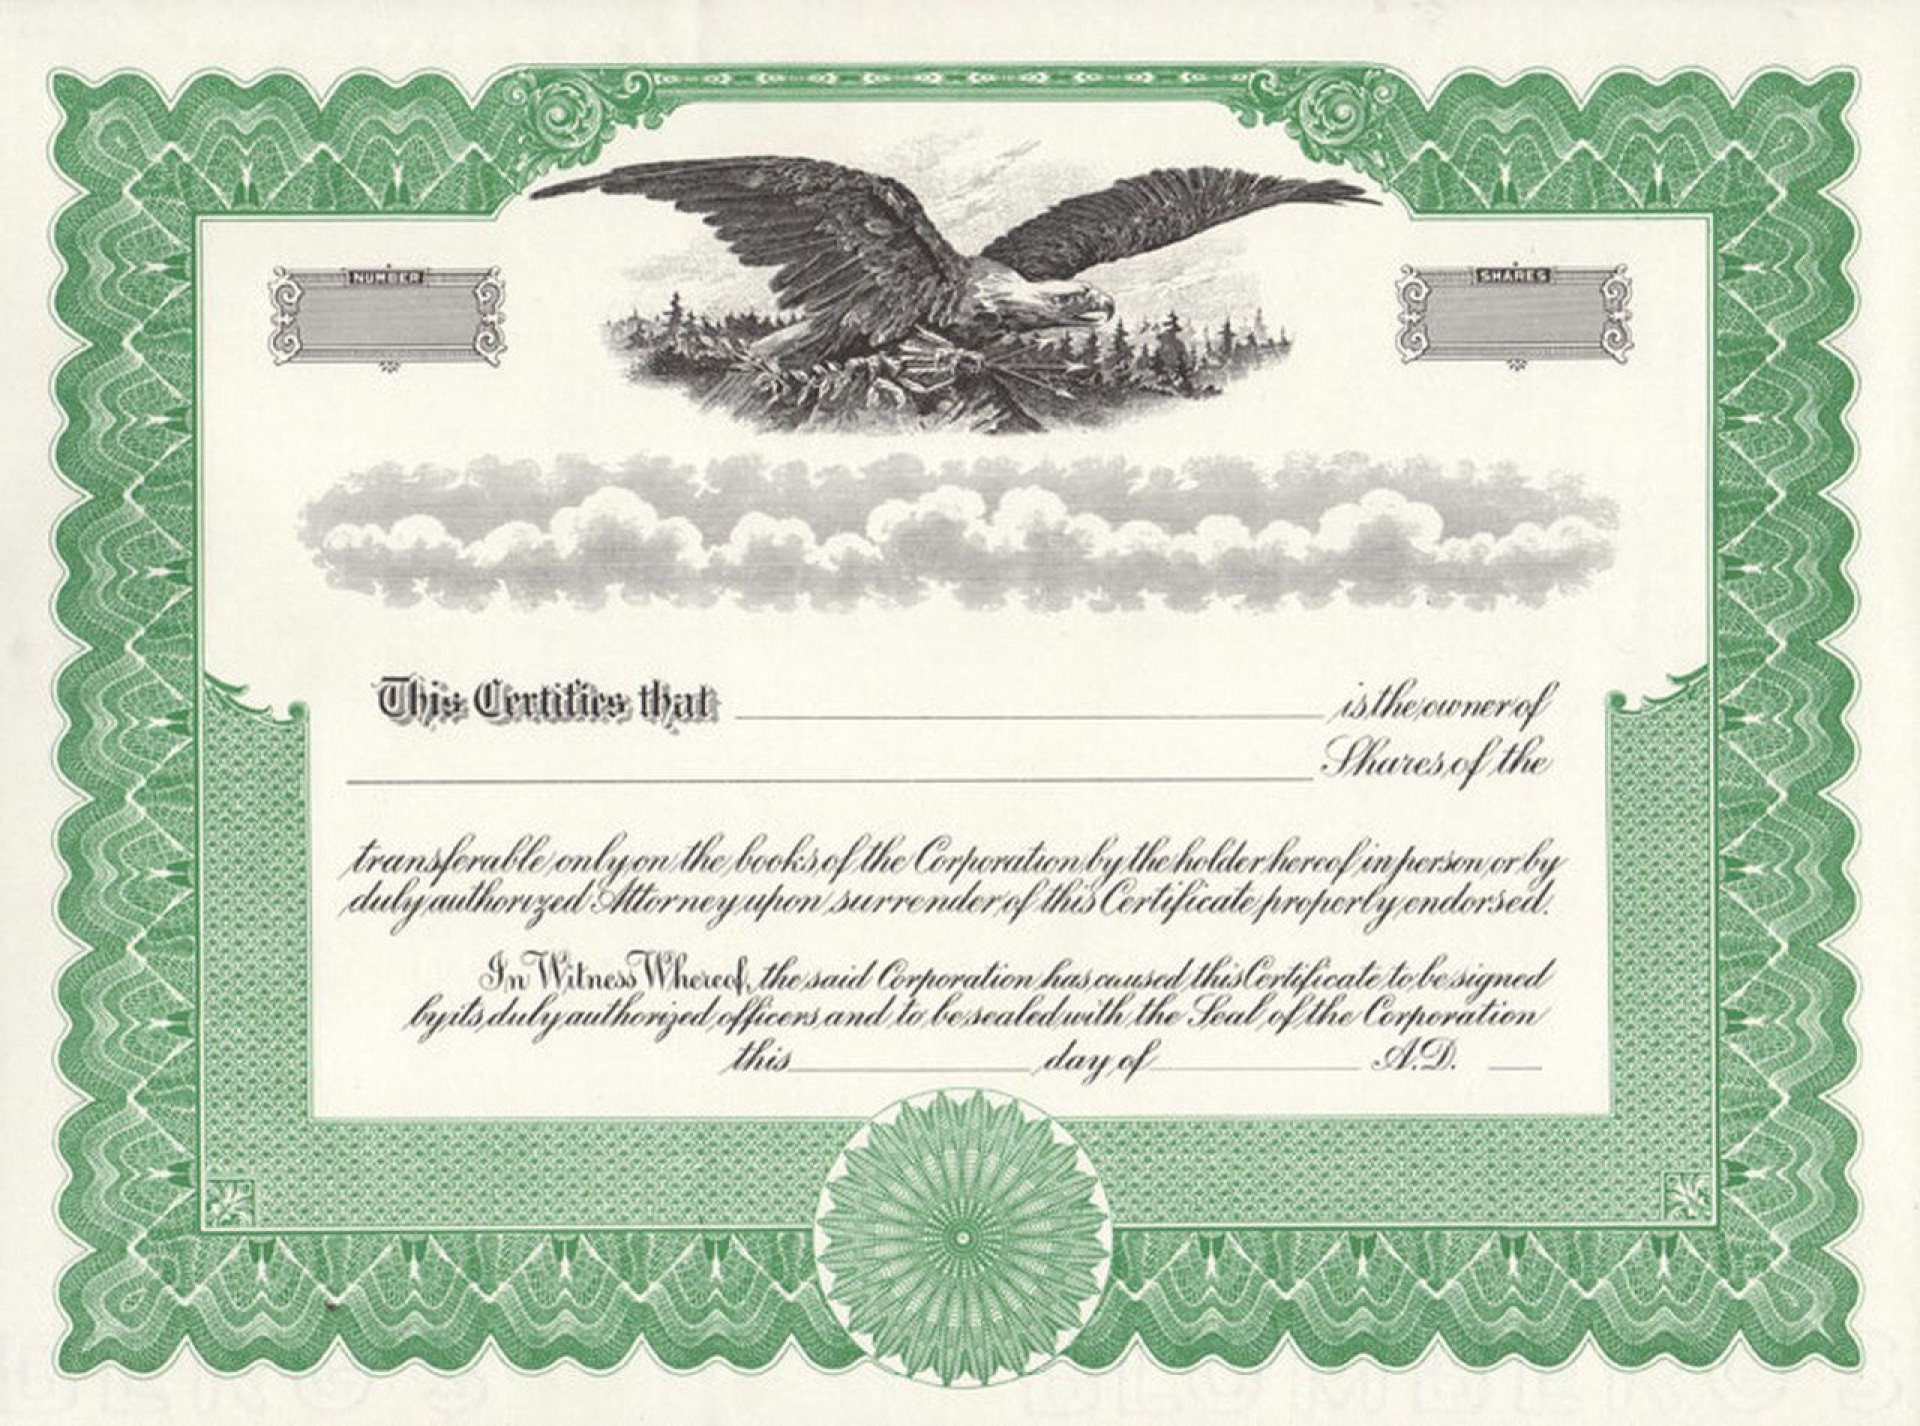 005 Archaicawful Stock Certificate Template Word High Resolution  Microsoft1920